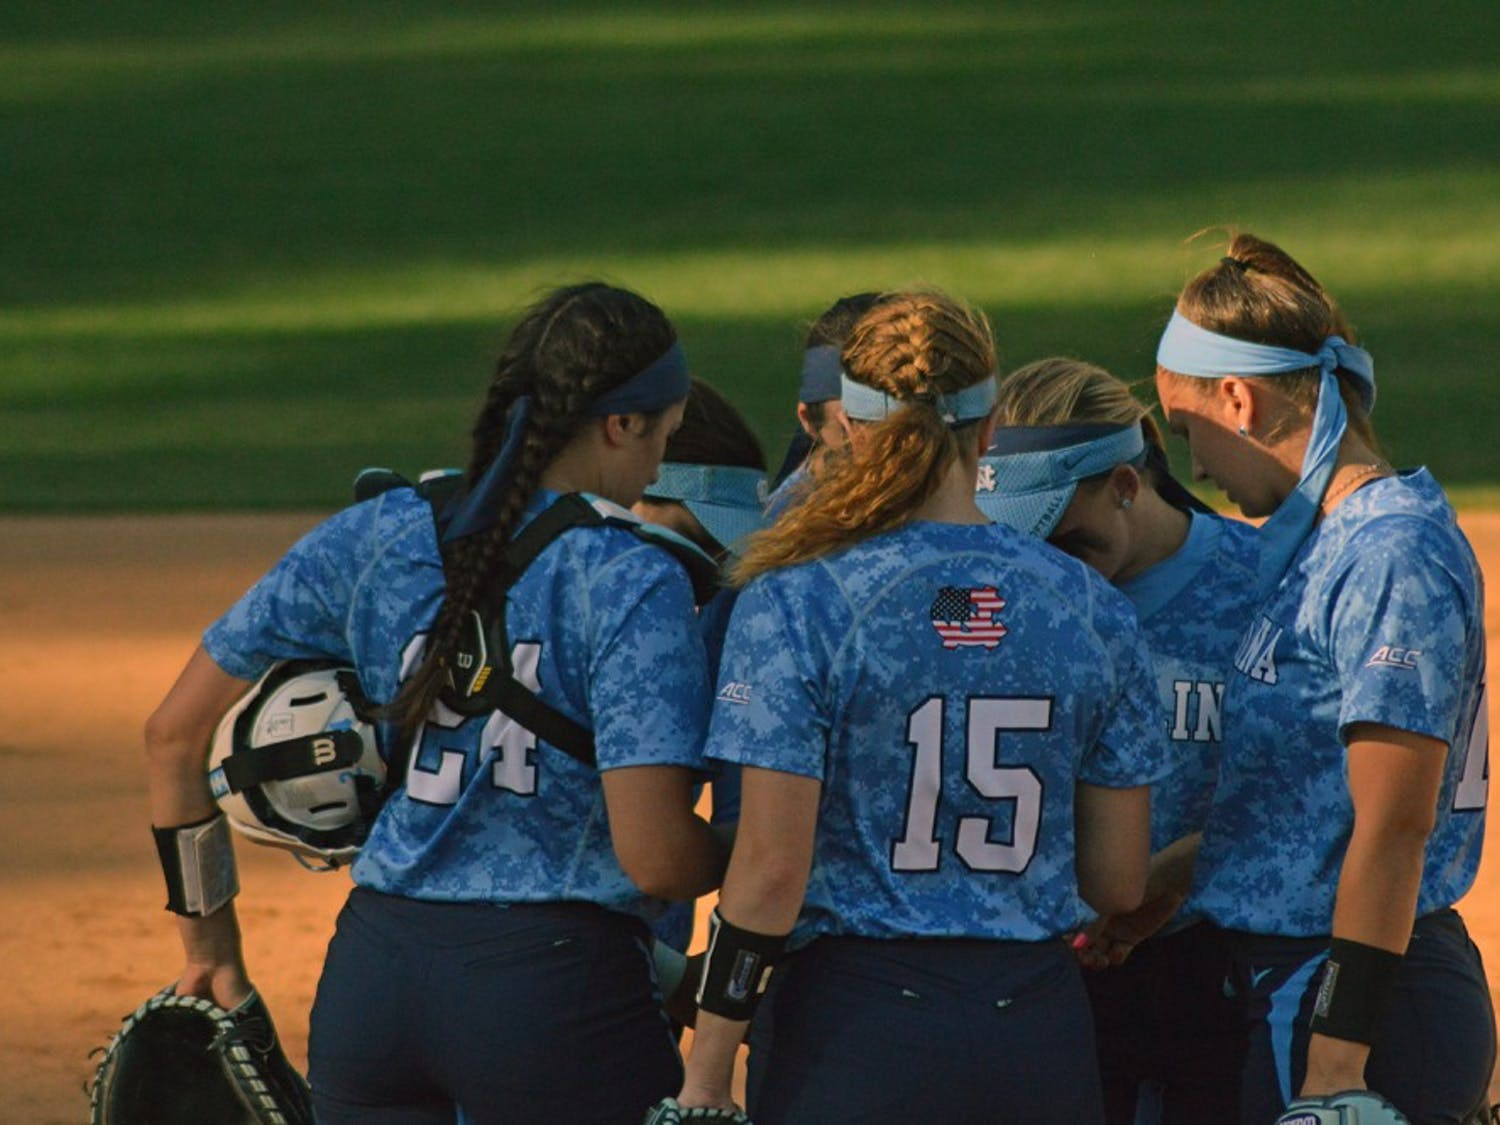 The UNC softball team huddled together to discuss their plays during their game against Louisville Saturday.